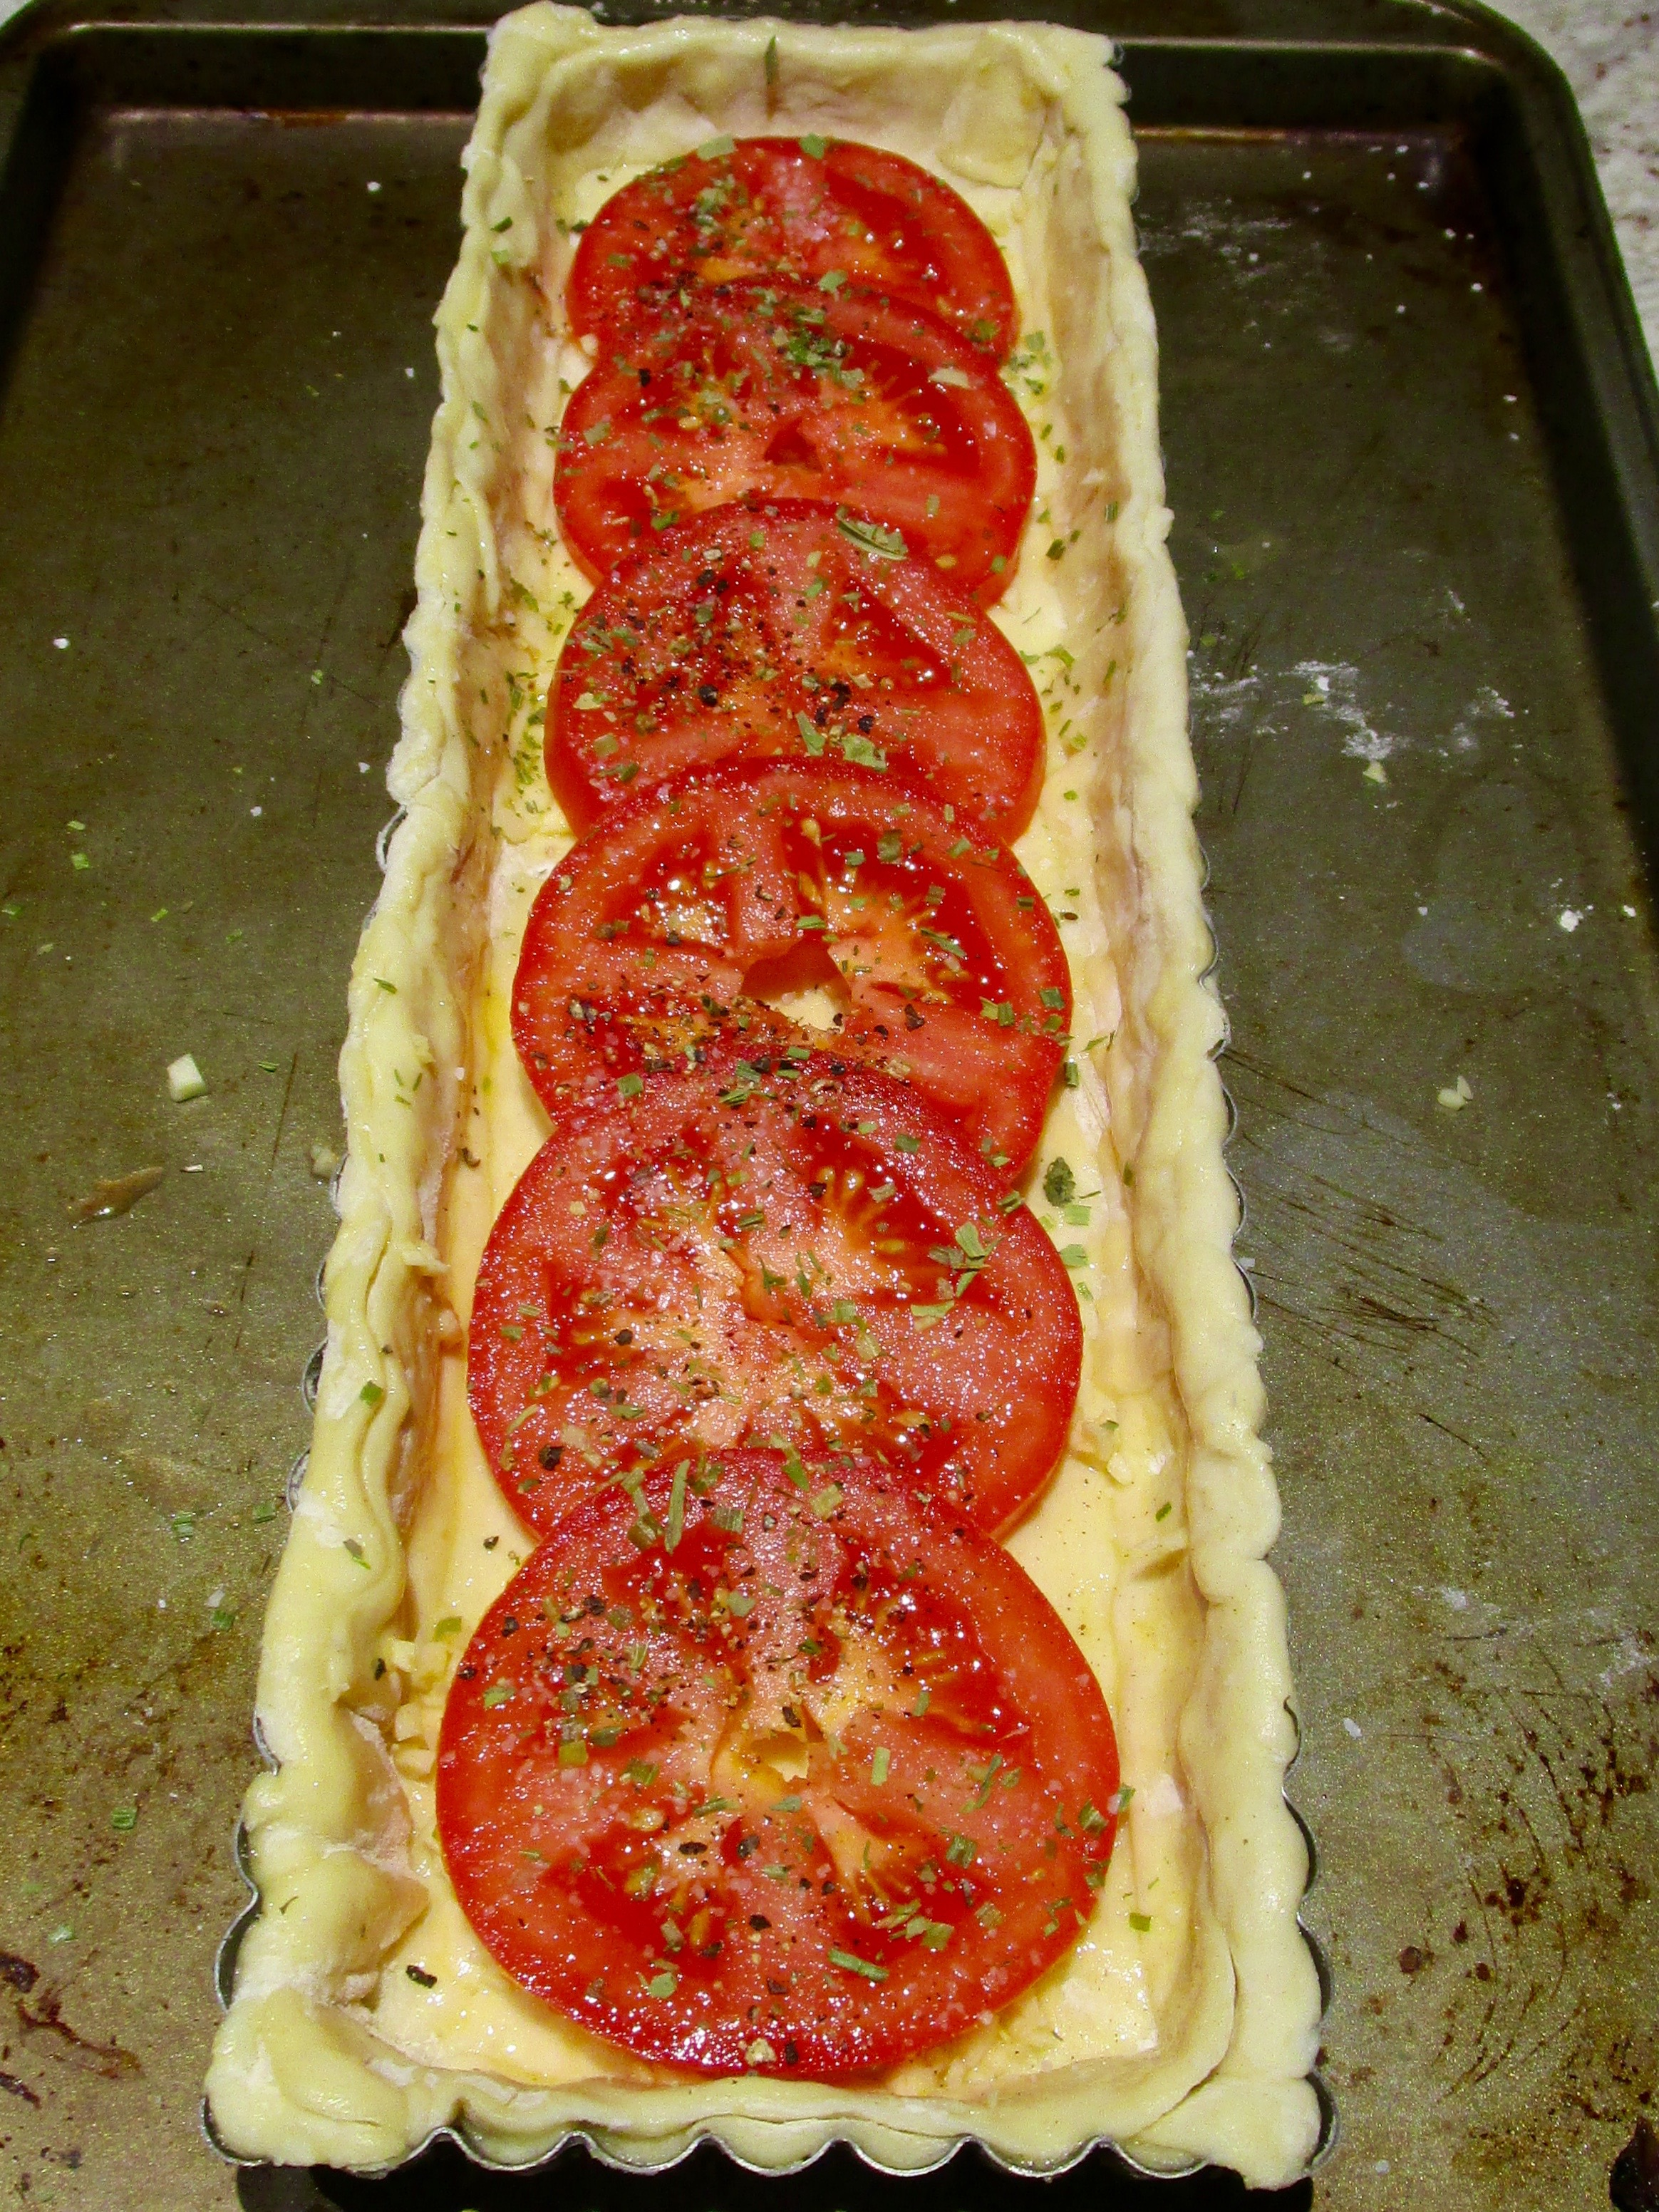 TO CARAMELIZE AND SOFTEN THE TOMATOES, THEY BAKE ALONE FOR 15 MINUTES AT 375 DEGREES BEFORE BEING JOINED BY CHEESE.